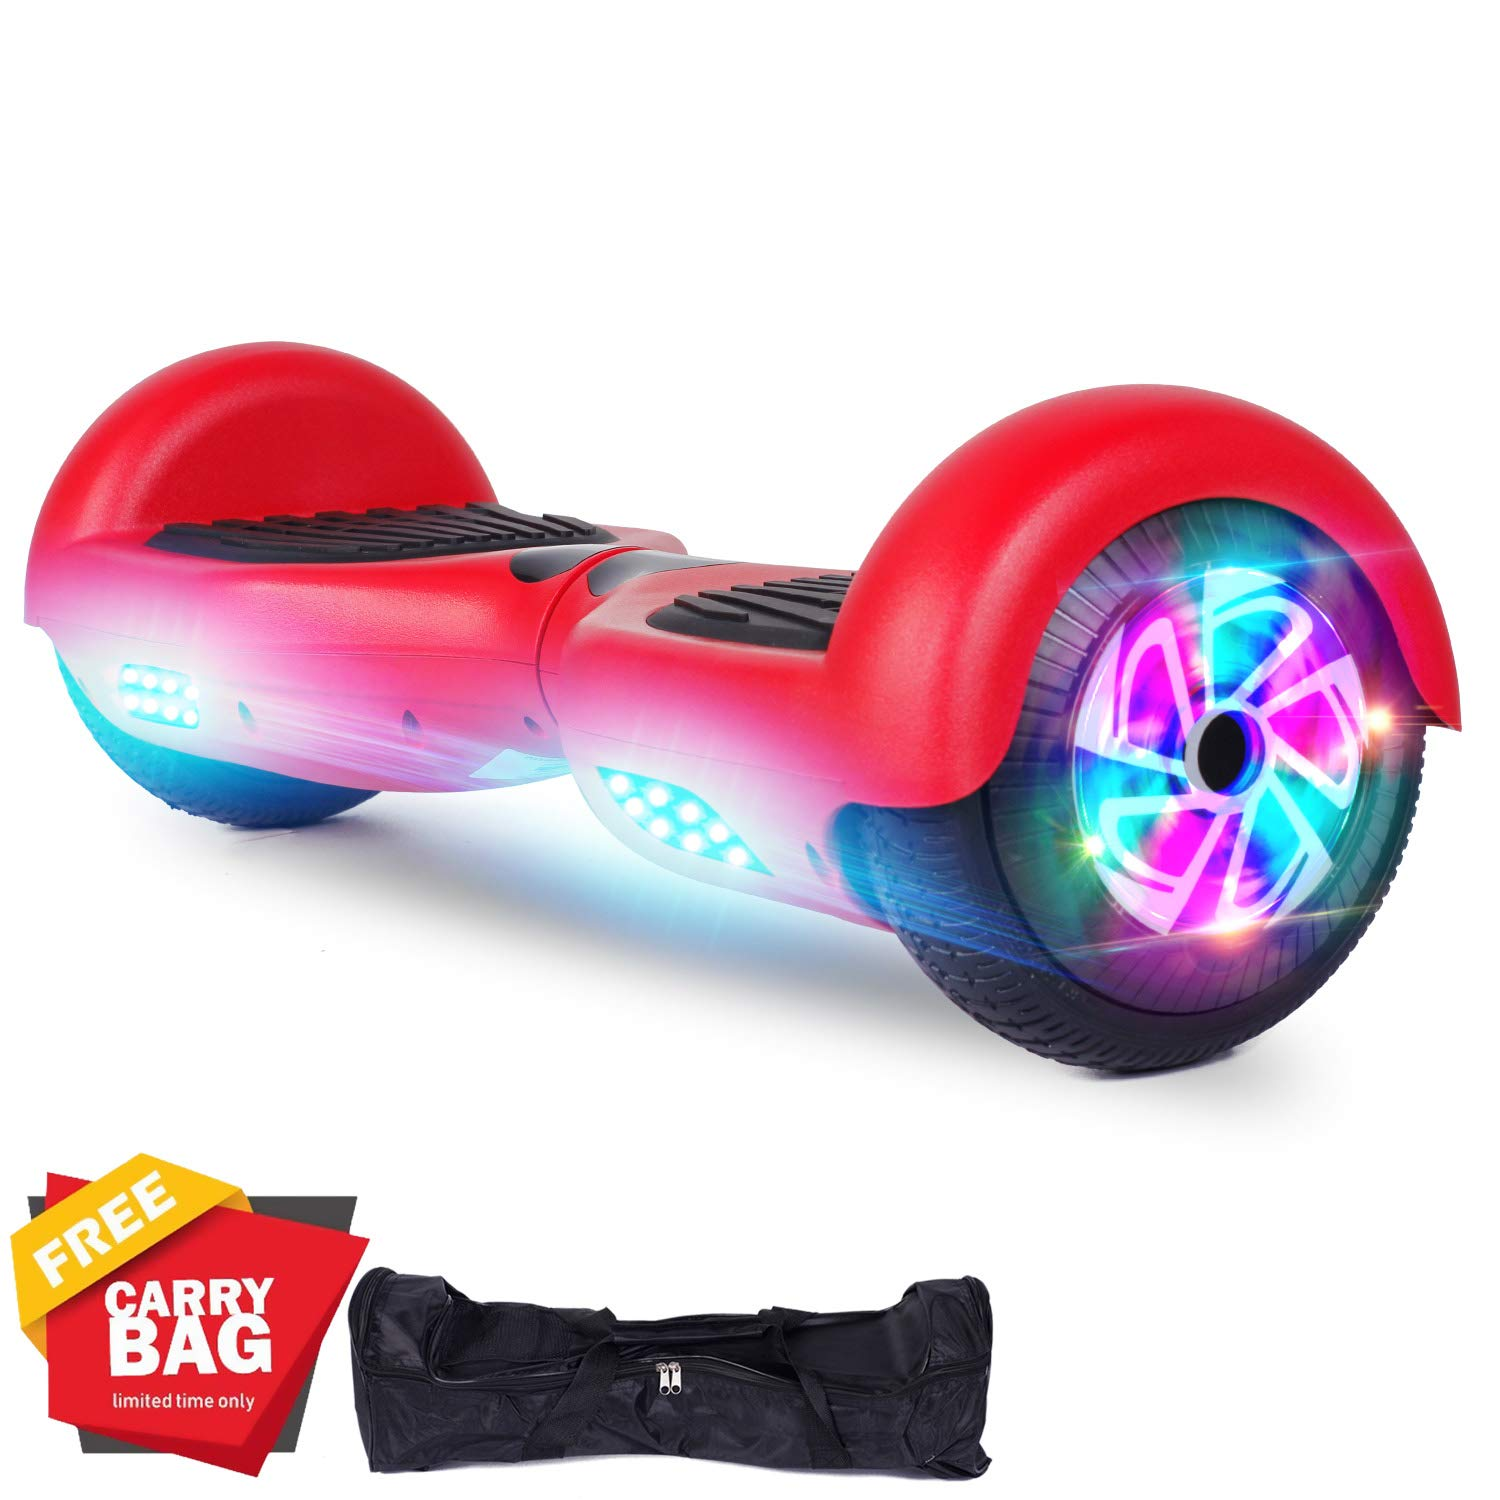 FLYING-ANT Hoverboards UL Certified 6.5 Smart Scooter Two-Wheel self Balancing Electric Scooter Light Free Bag and Charger Included by FLYING-ANT